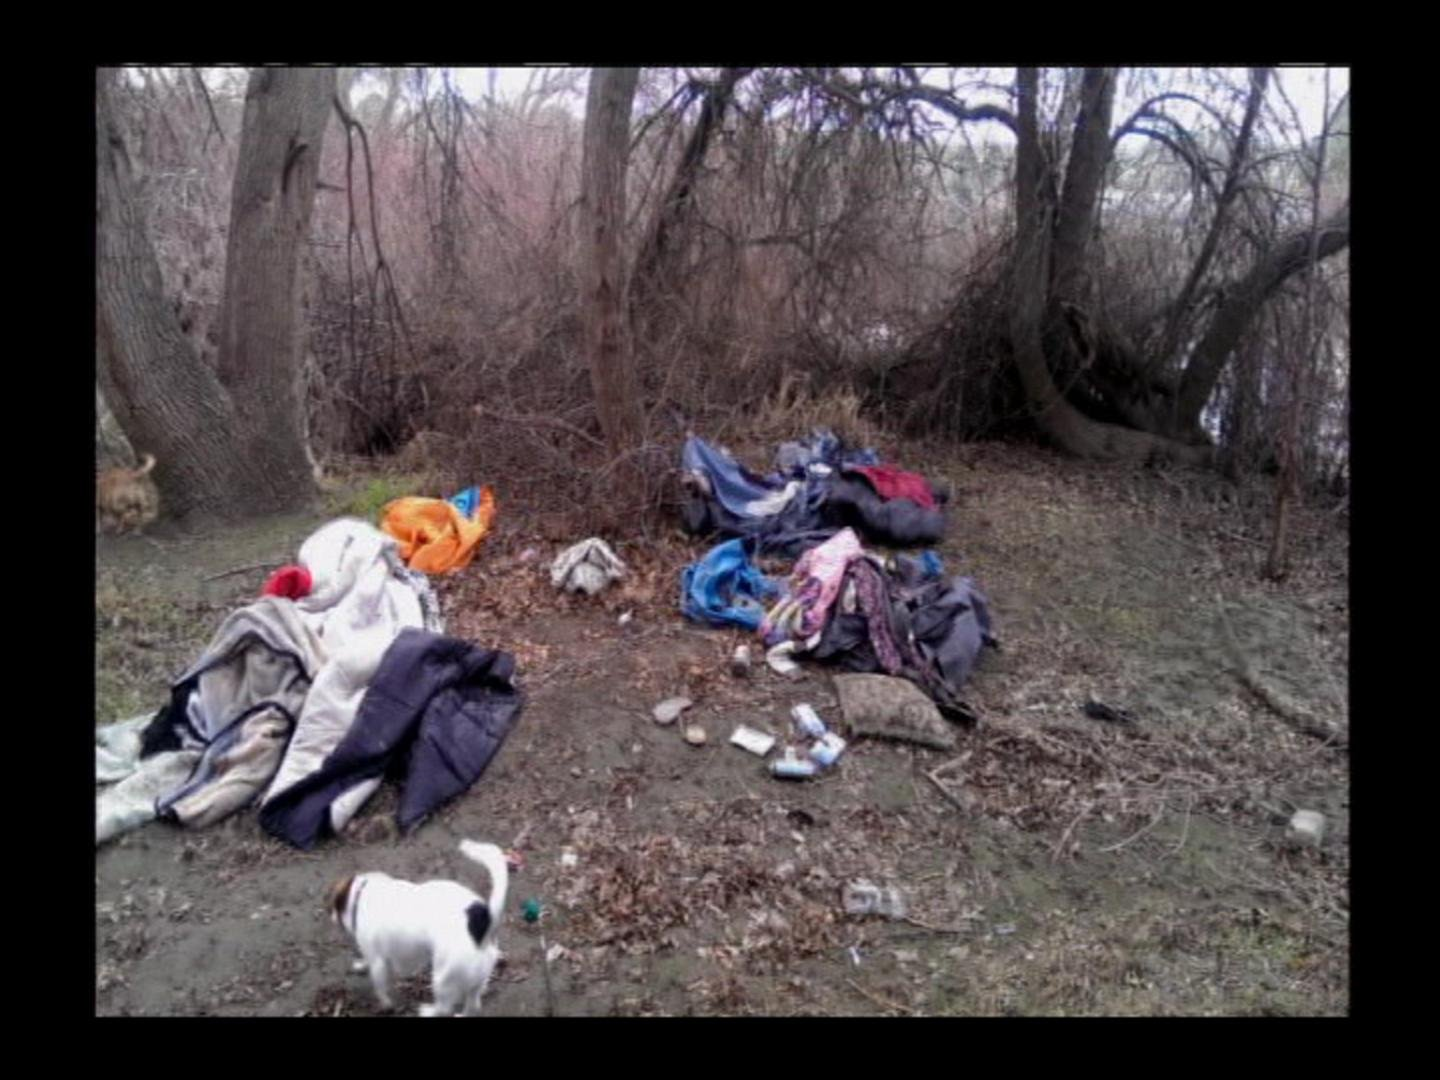 Items like tents, clothes, and even dogs have been found in the parks.